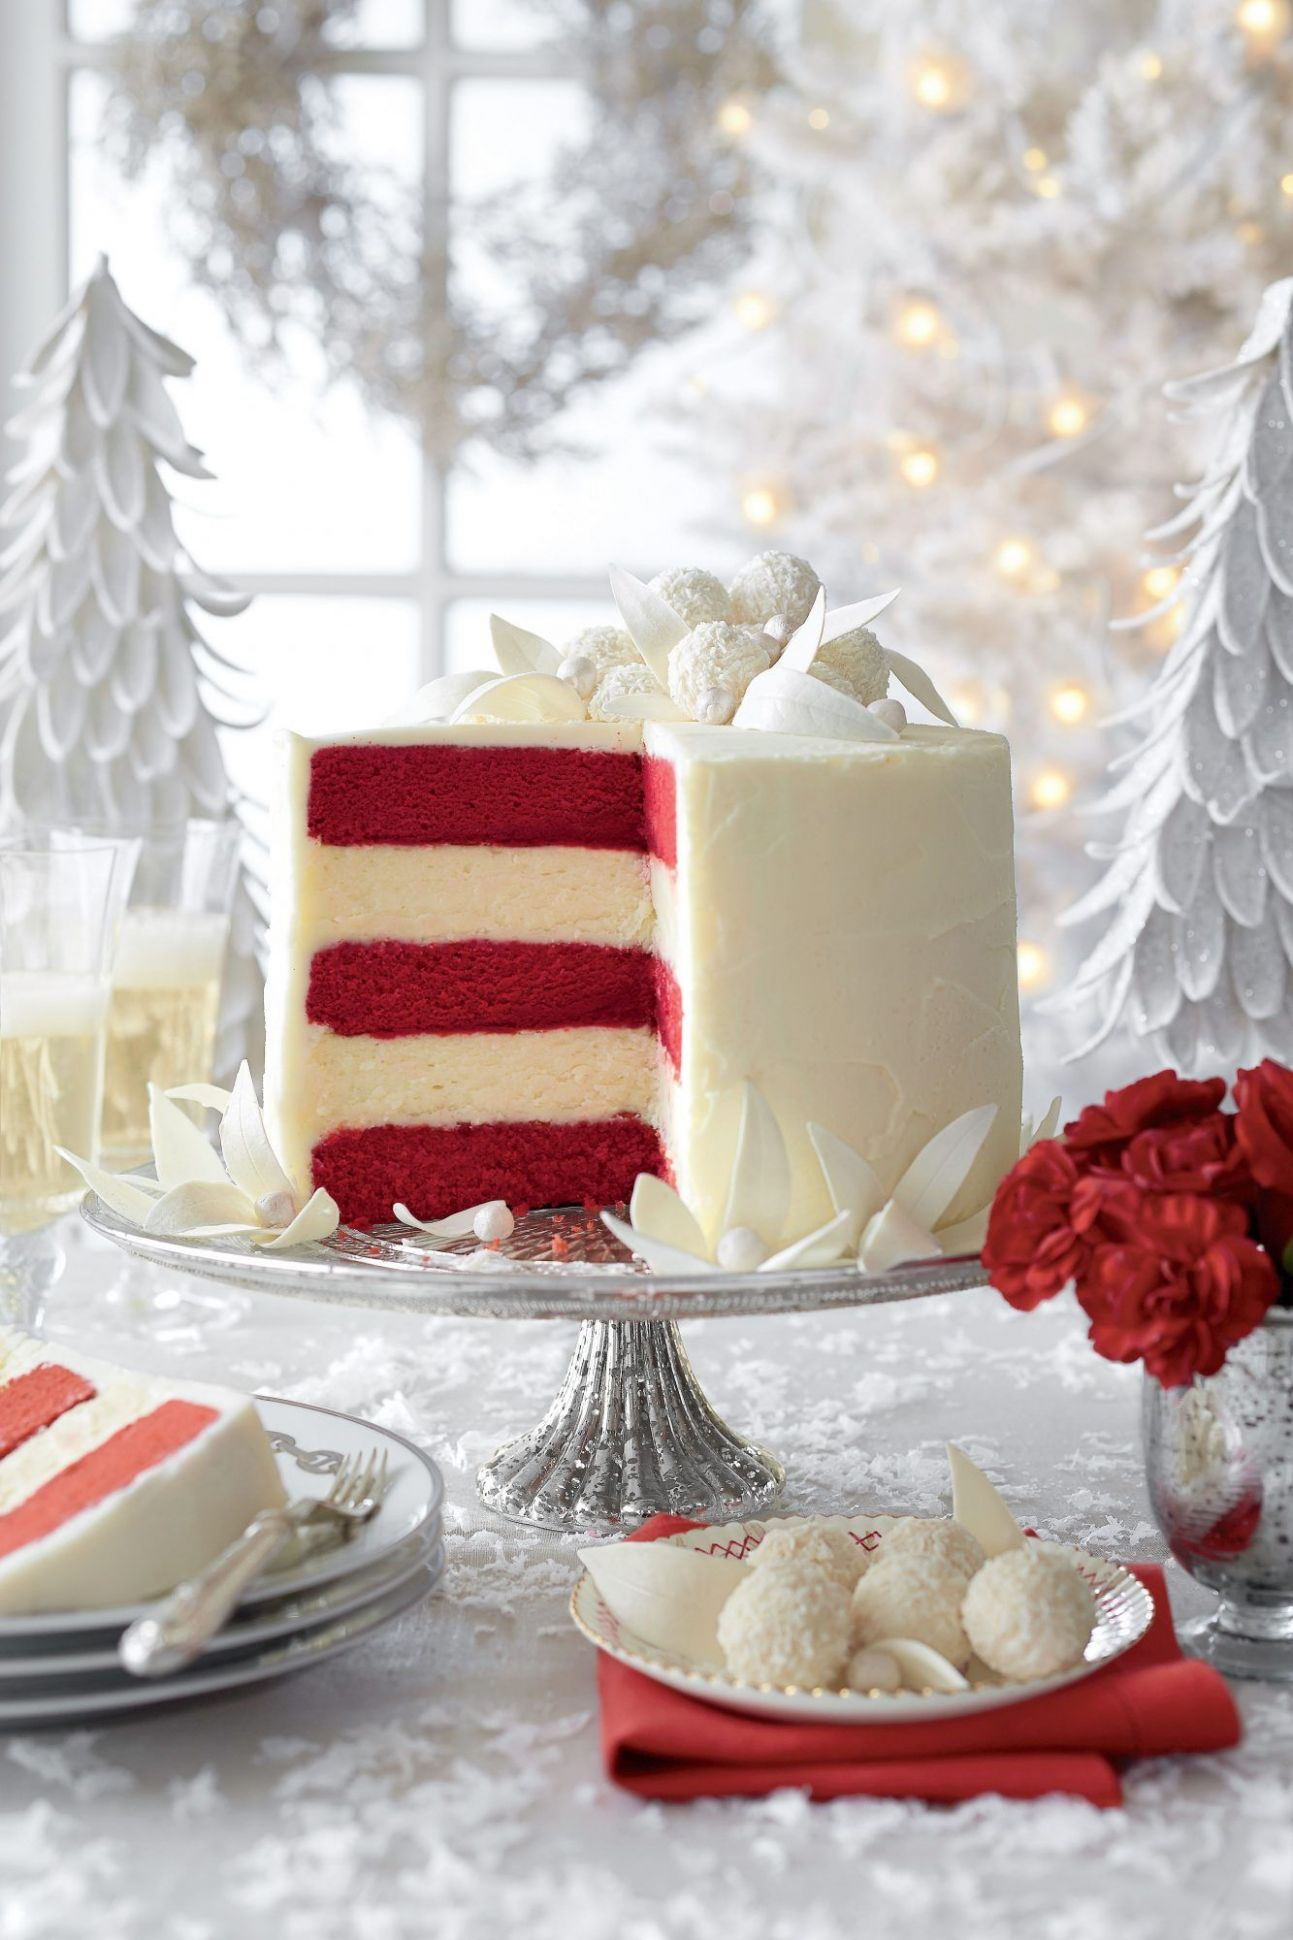 This Is Our Most Popular Christmas Cake Ever | White chocolate ...